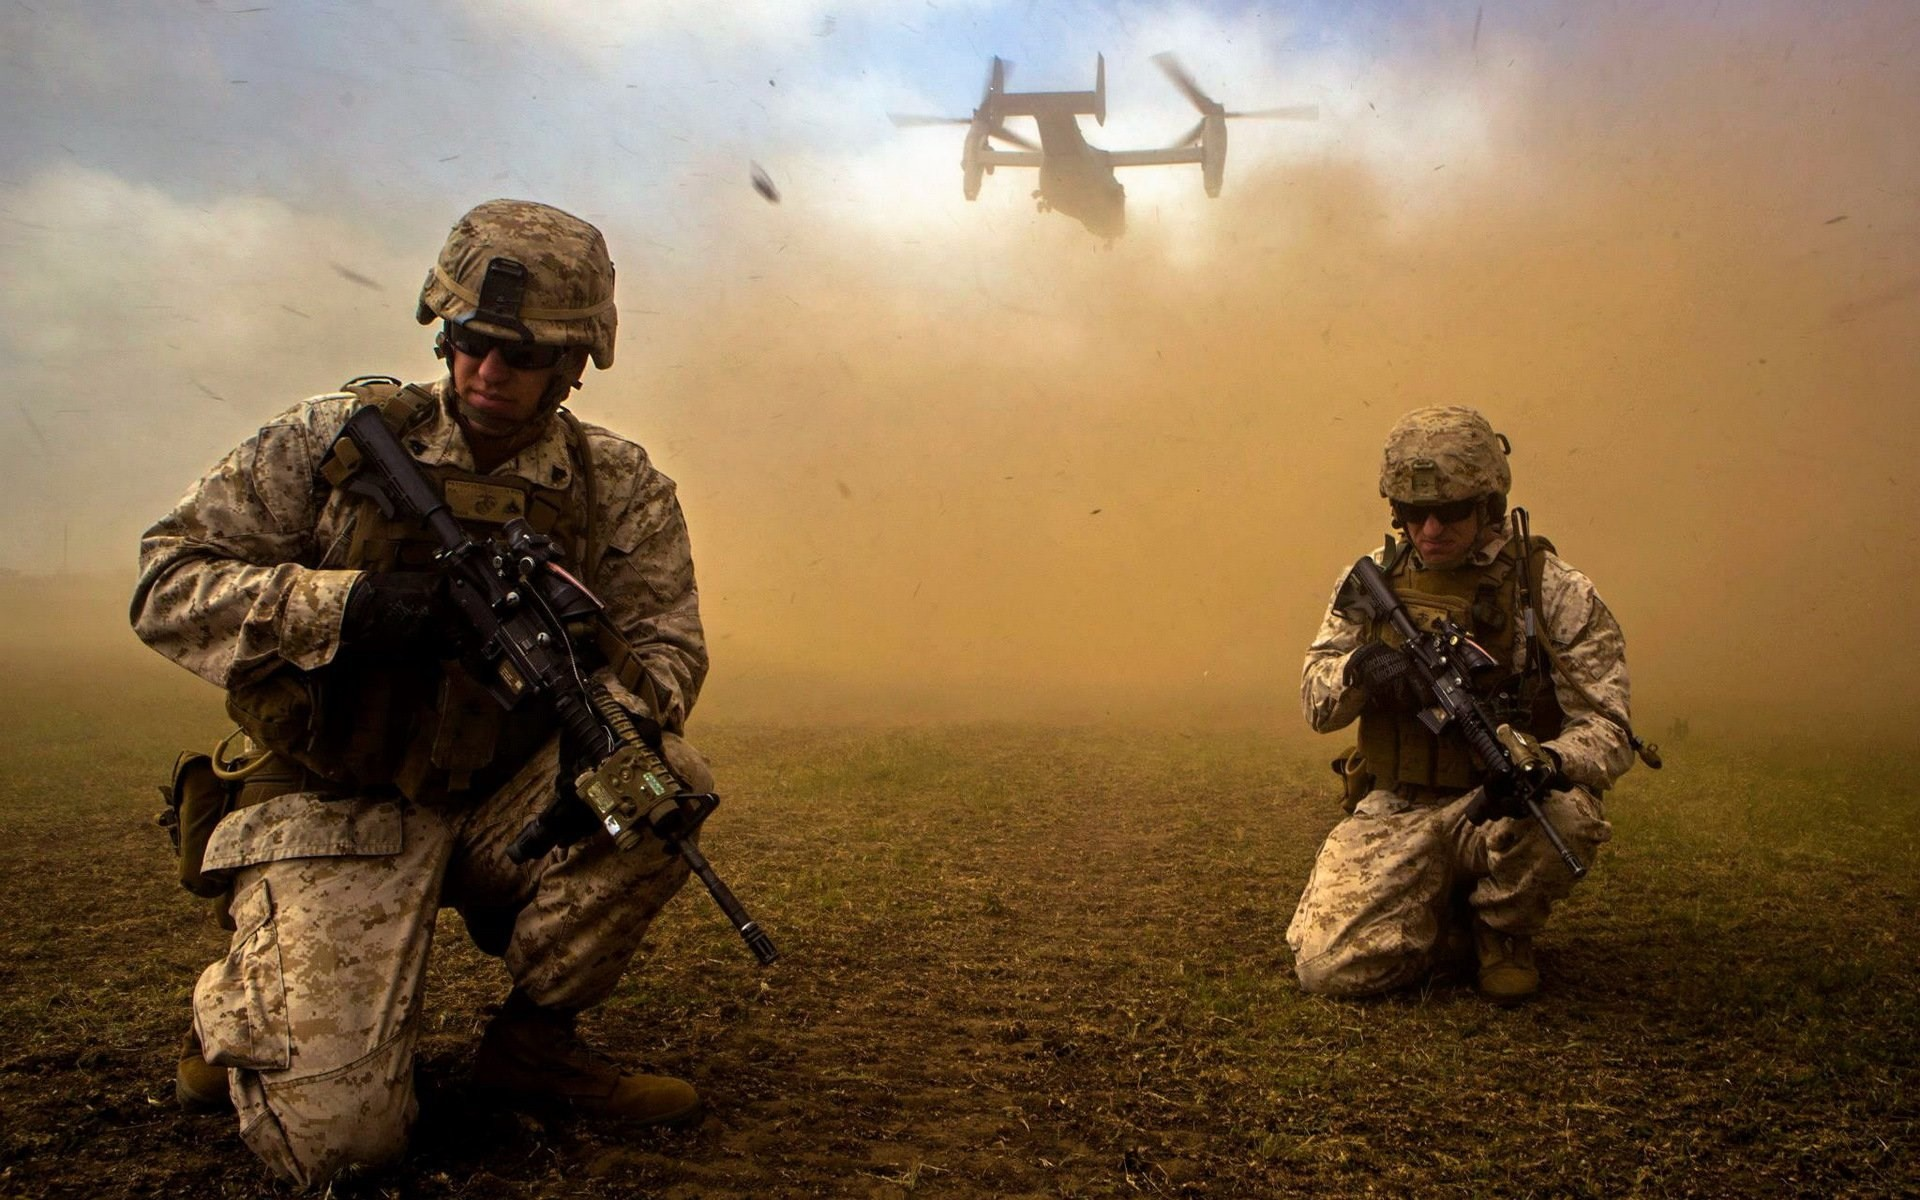 free wallpaper and screensavers for soldier – soldier category